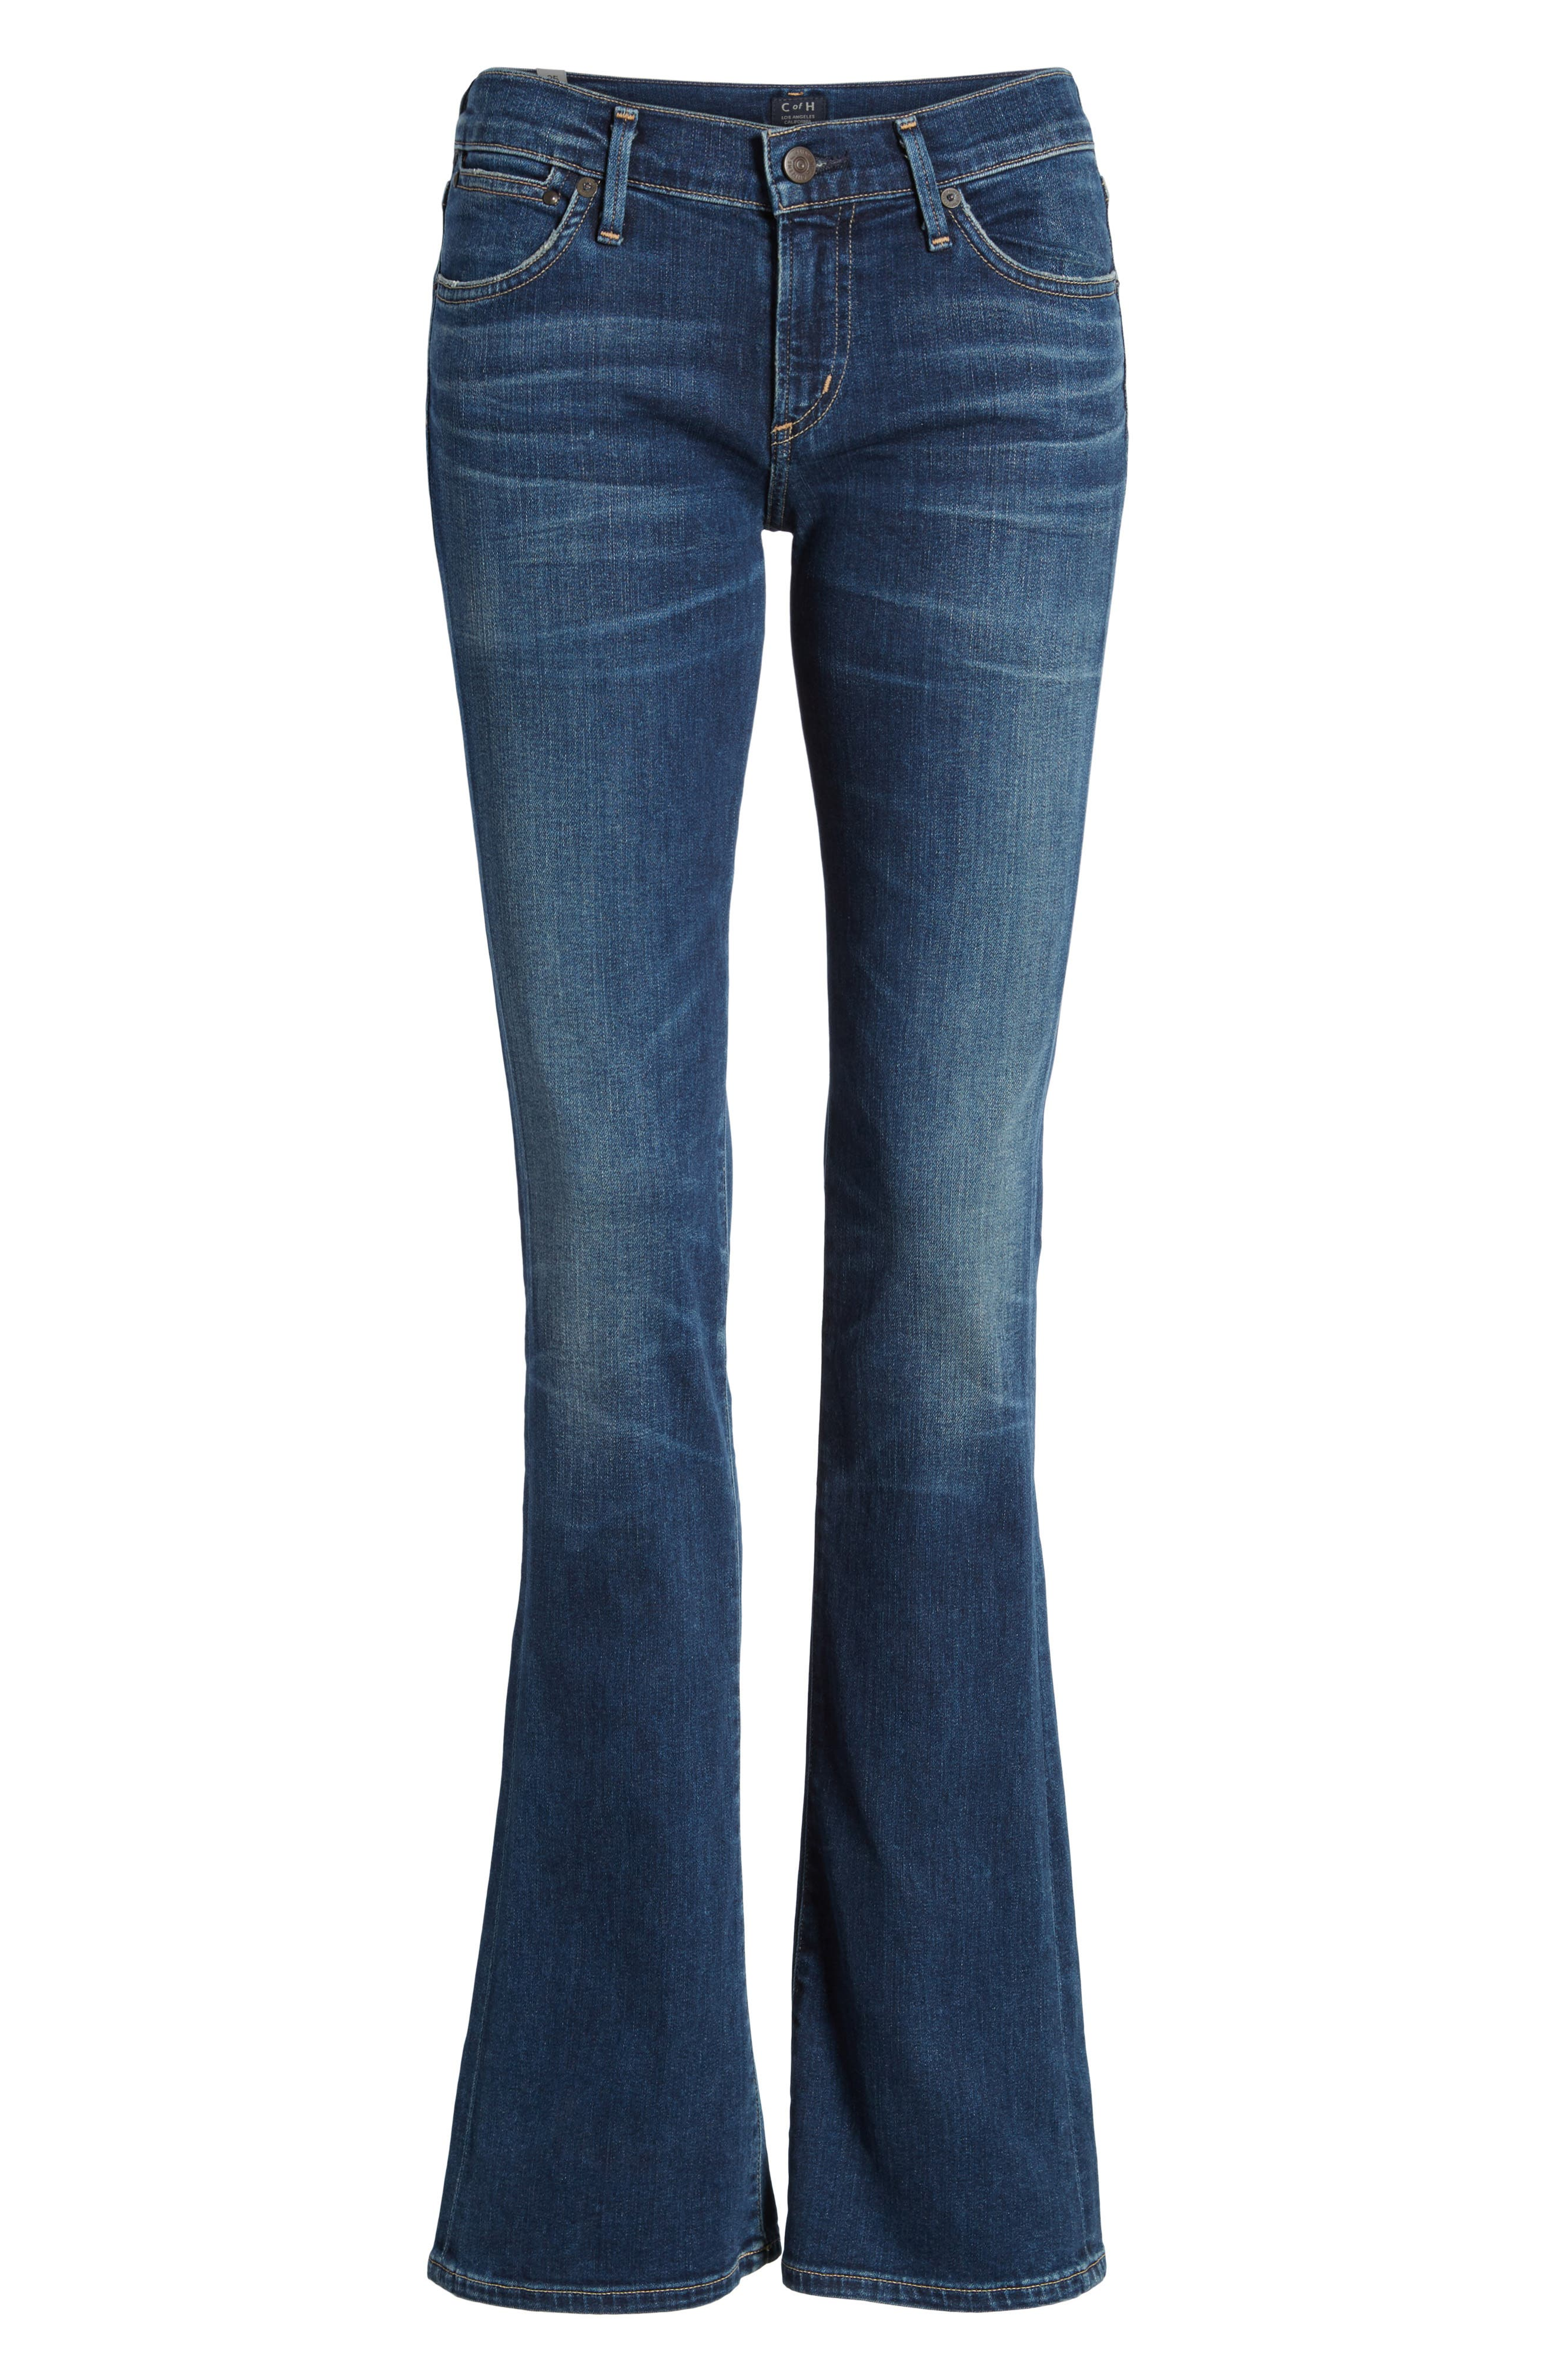 CITIZENS OF HUMANITY, 'Emannuelle' Slim BootcutJeans, Alternate thumbnail 2, color, MODERN LOVE